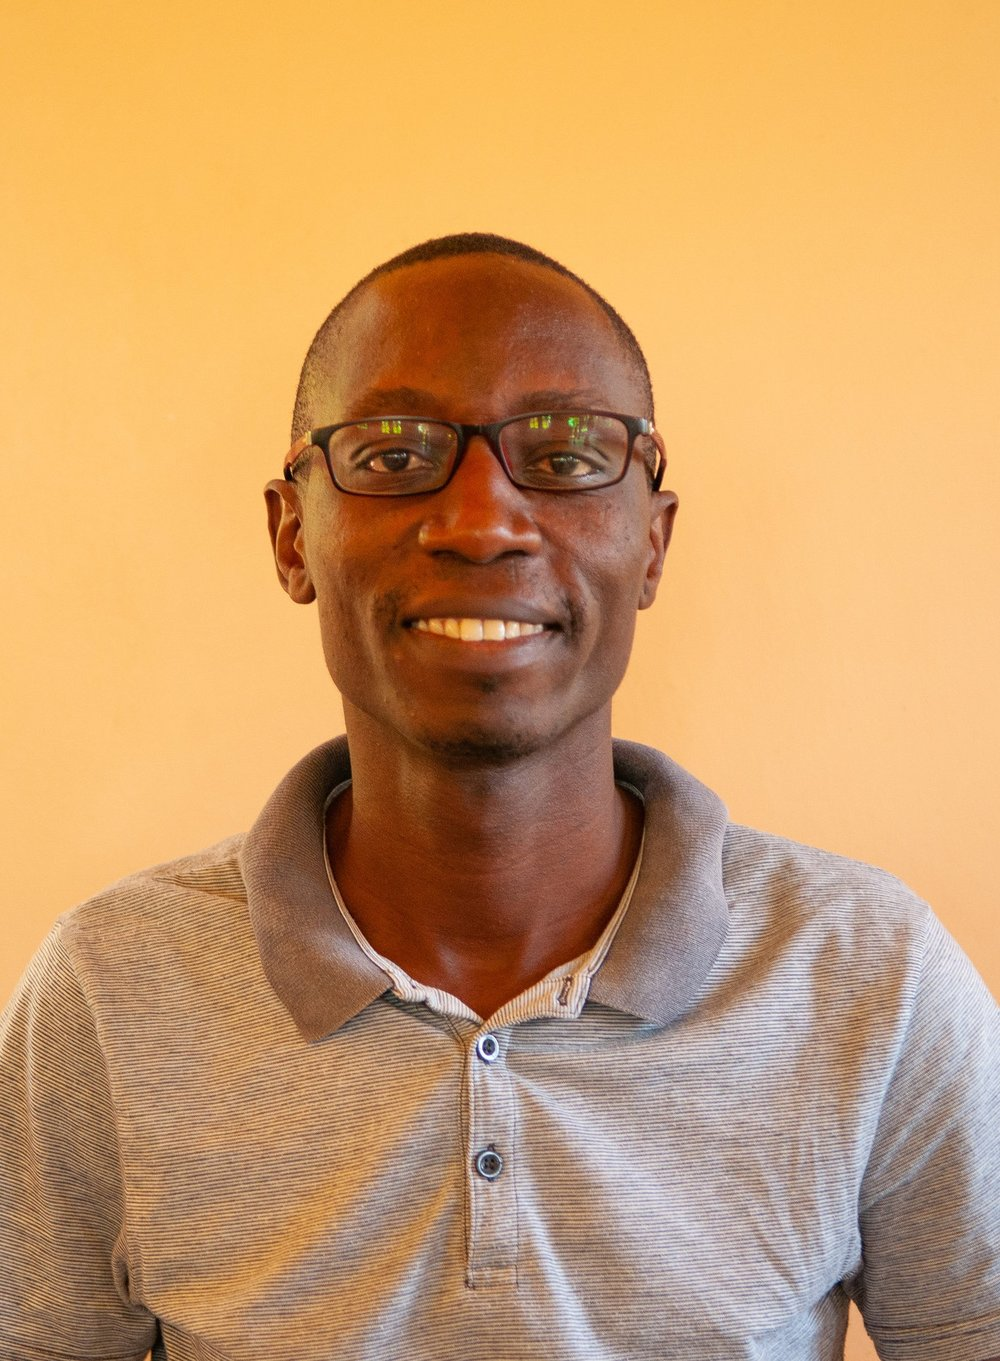 Sam Kirabo - CivSource Africa organized a men's only retreat in January 2019. It was a time to reflect on the past year, launch into the new one and plan to be and do better.While there, I met, interacted and learned from other men but it allowed me time alone for introspection. One participant remarked, 'it was a very timely retreat bringing men together in their diversities to share and learn from each other but also unlearn certain things especially while on a journey to self-discovery.' That was precisely it. To some people it was a time to shake and challenge different narratives and strive to go beyond the ordinary.With the high levels of impunity we are witnessing today, one asks how one can change this for the betterment of our country. By being the change we want to see. It all starts with me. If I don't improve self in areas of leadership and self-management, I won't see the change I dream of. I can talk up a storm but if I don't walk the talk, it's just hot air.